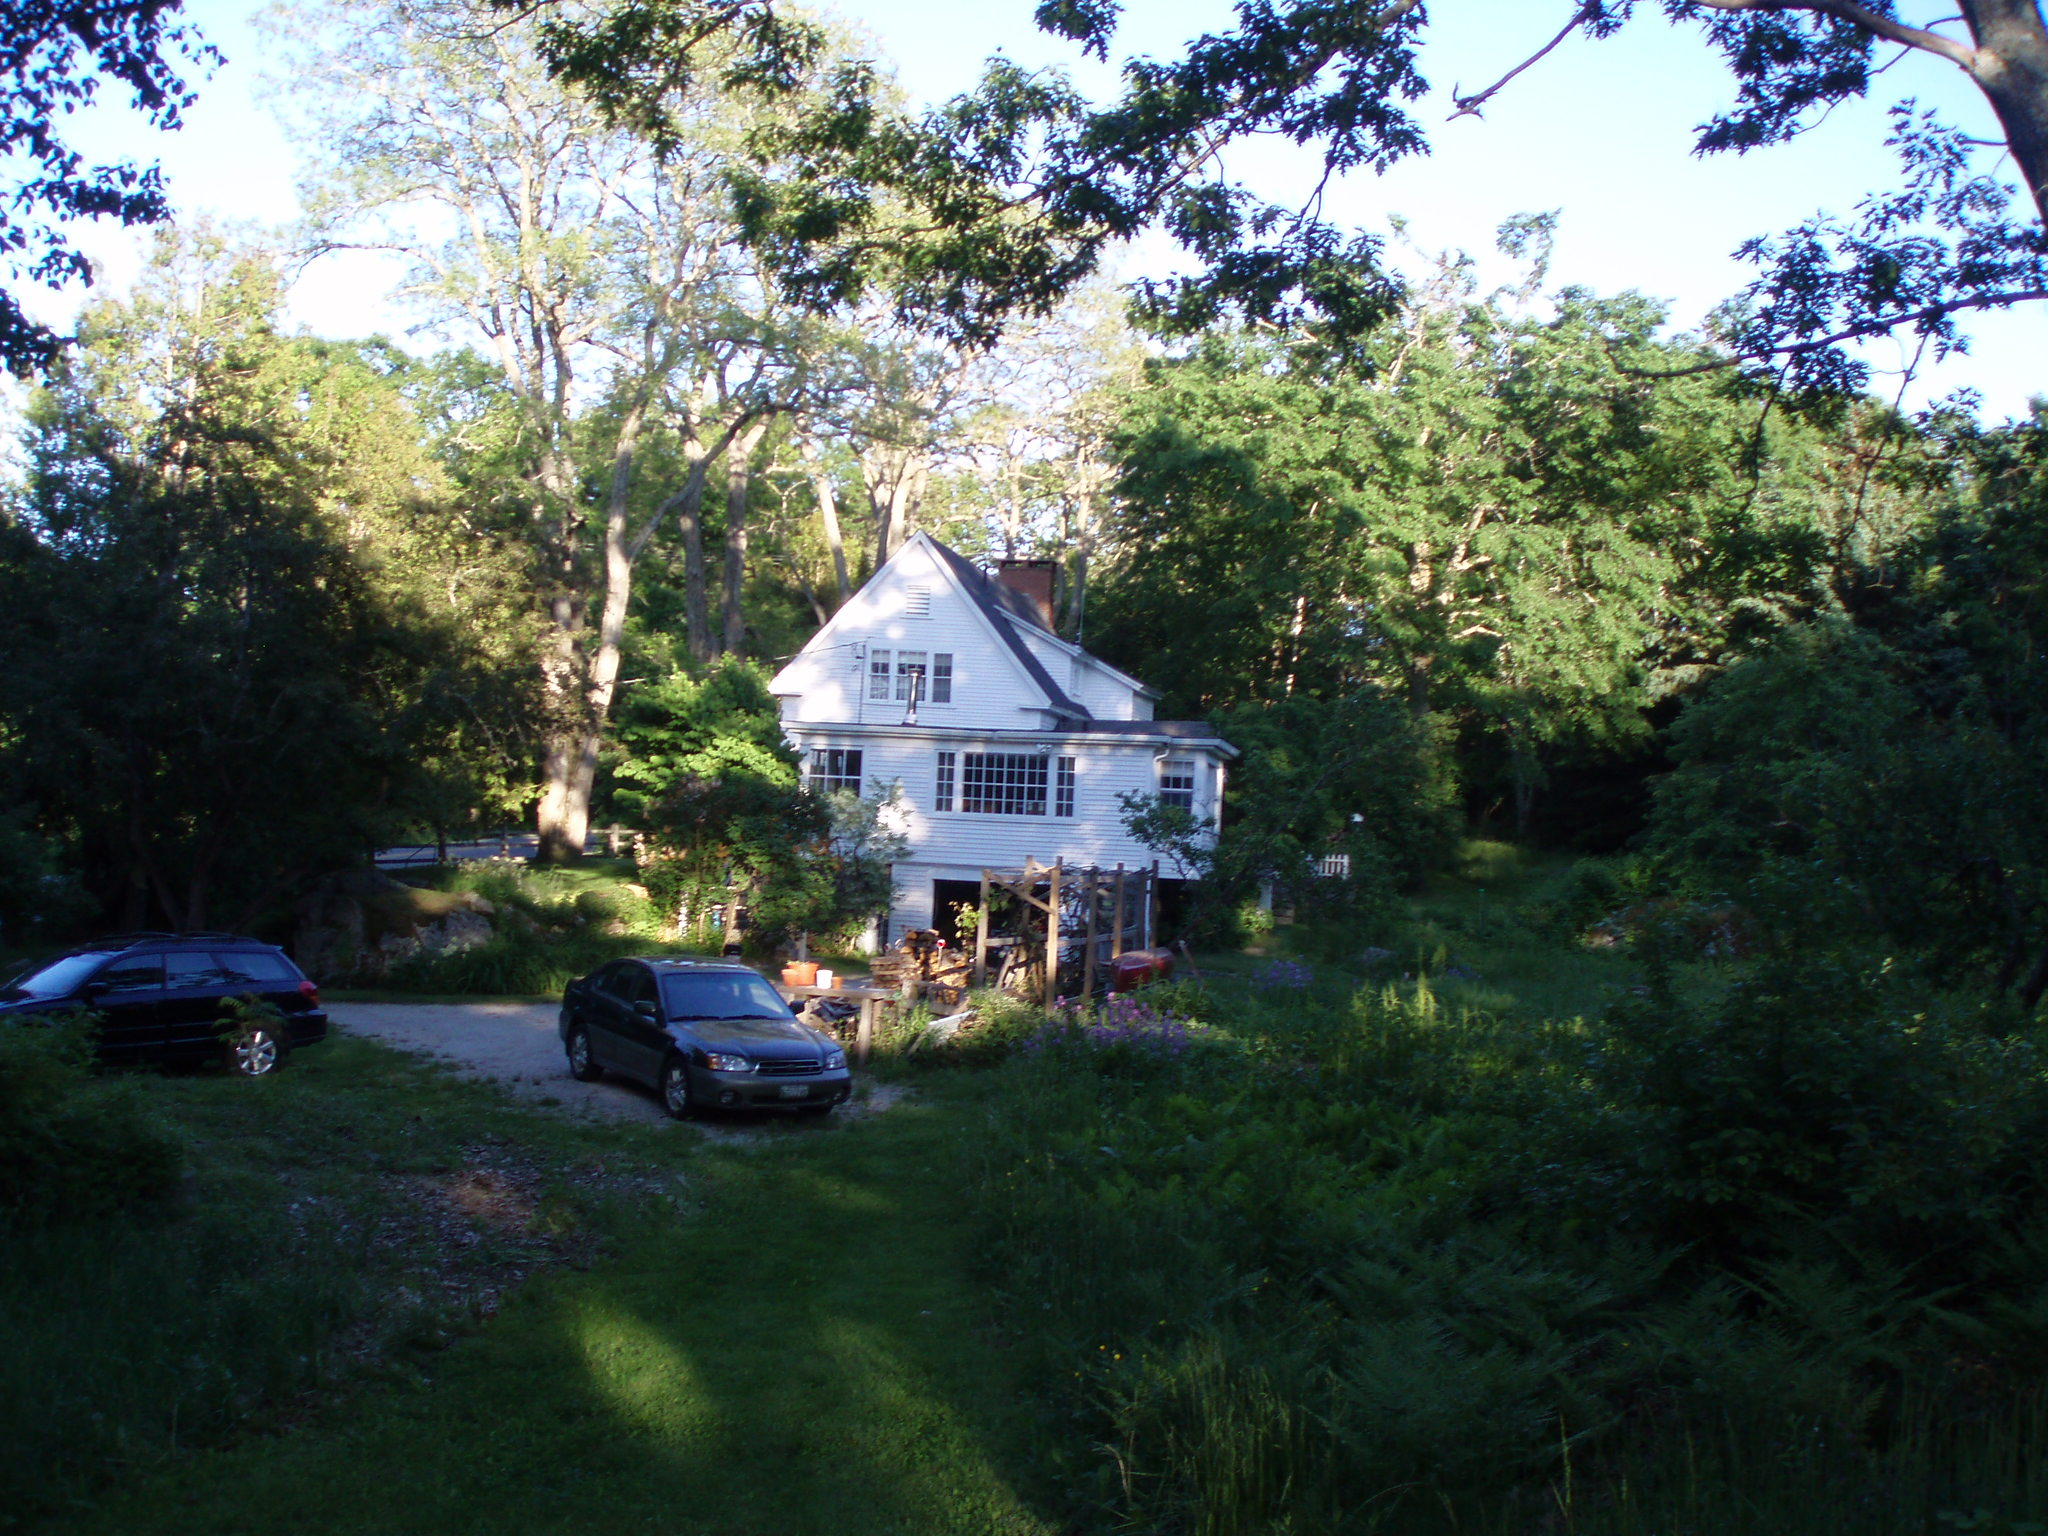 outside view of Jennifer and Berto's beautiful White House in Blue hill Maine